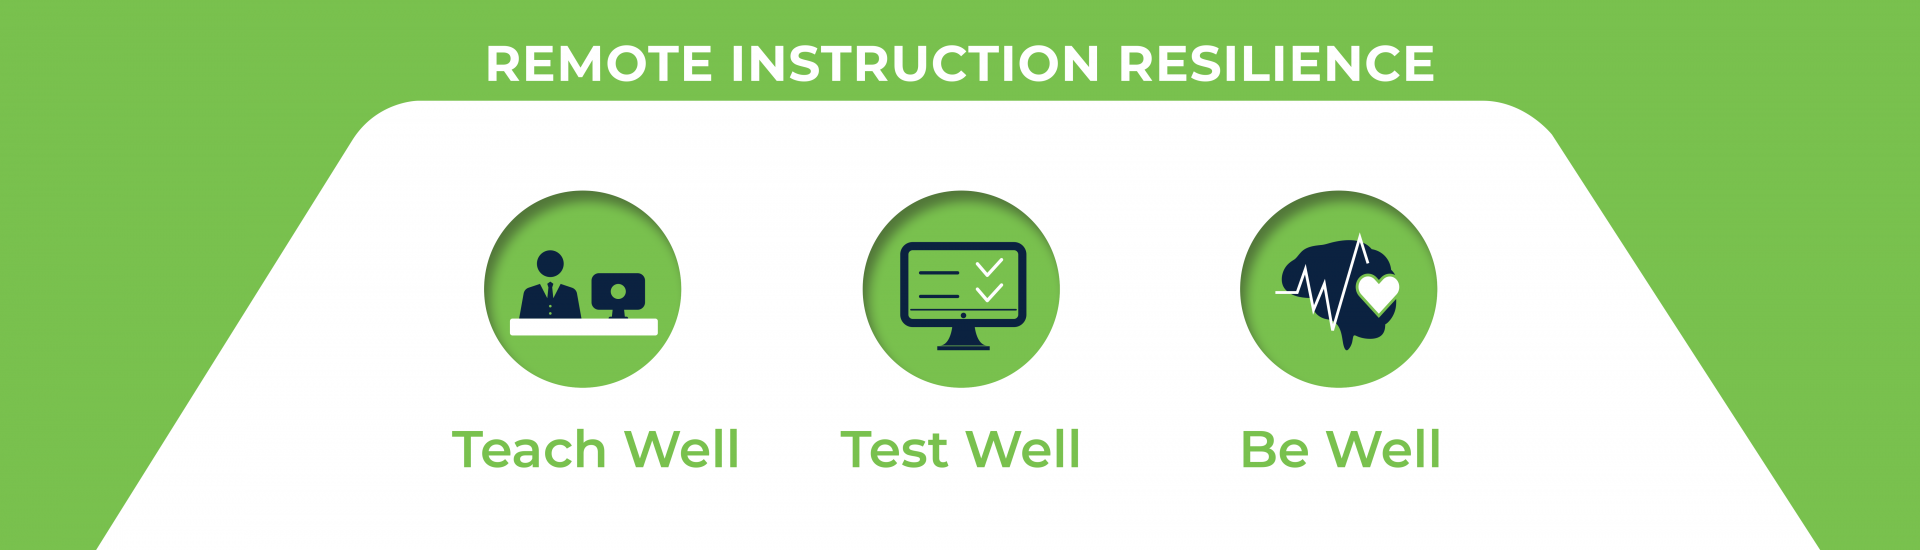 Remote Instruction Resilience - Teach Well Icon, Test Well icon, Be Well icon